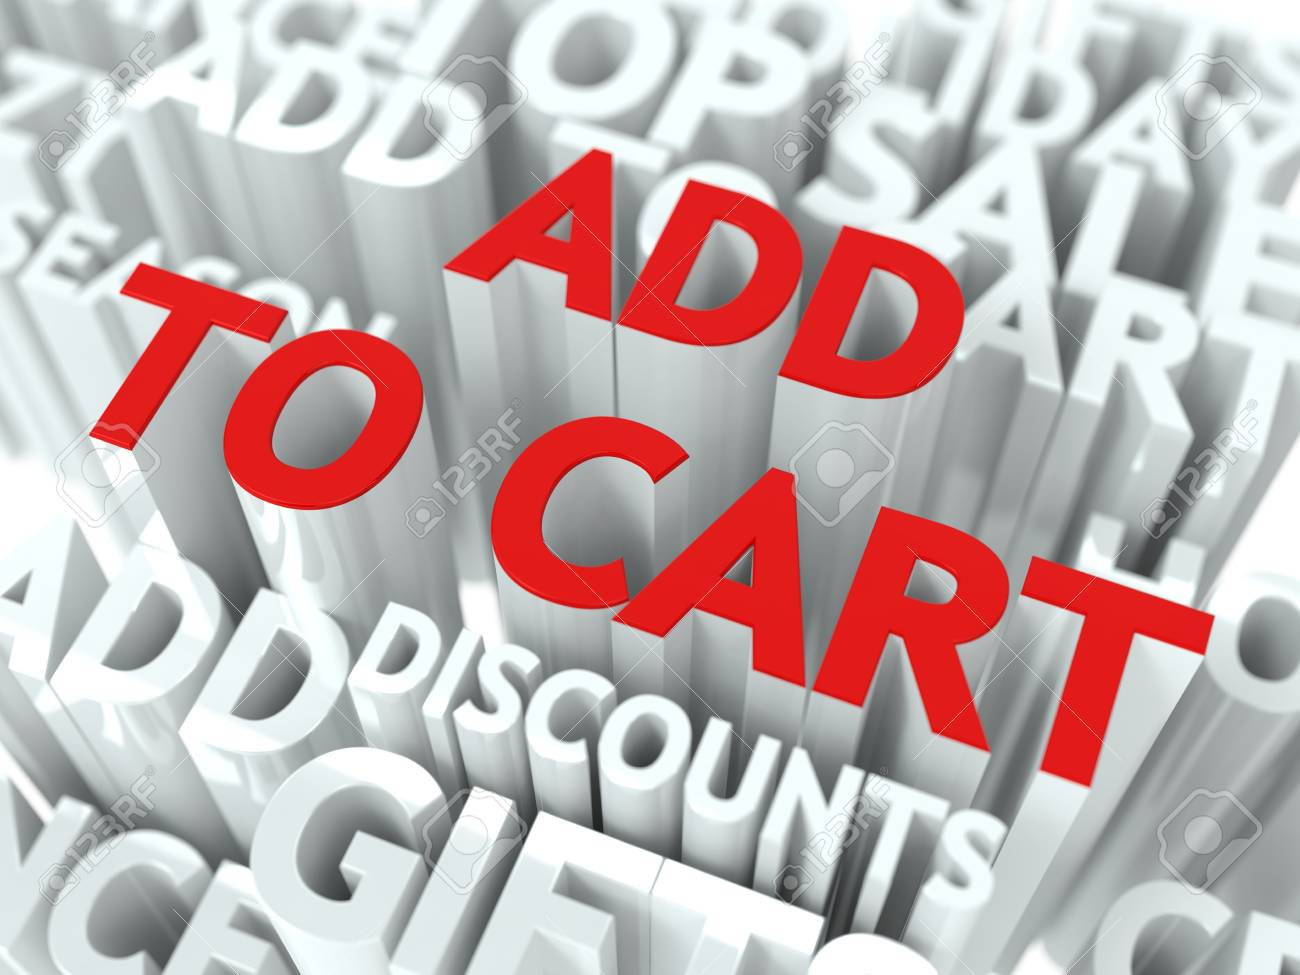 Add To Cart Concept  The Word of Red Color Located over Text of White Color Stock Photo - 17599454